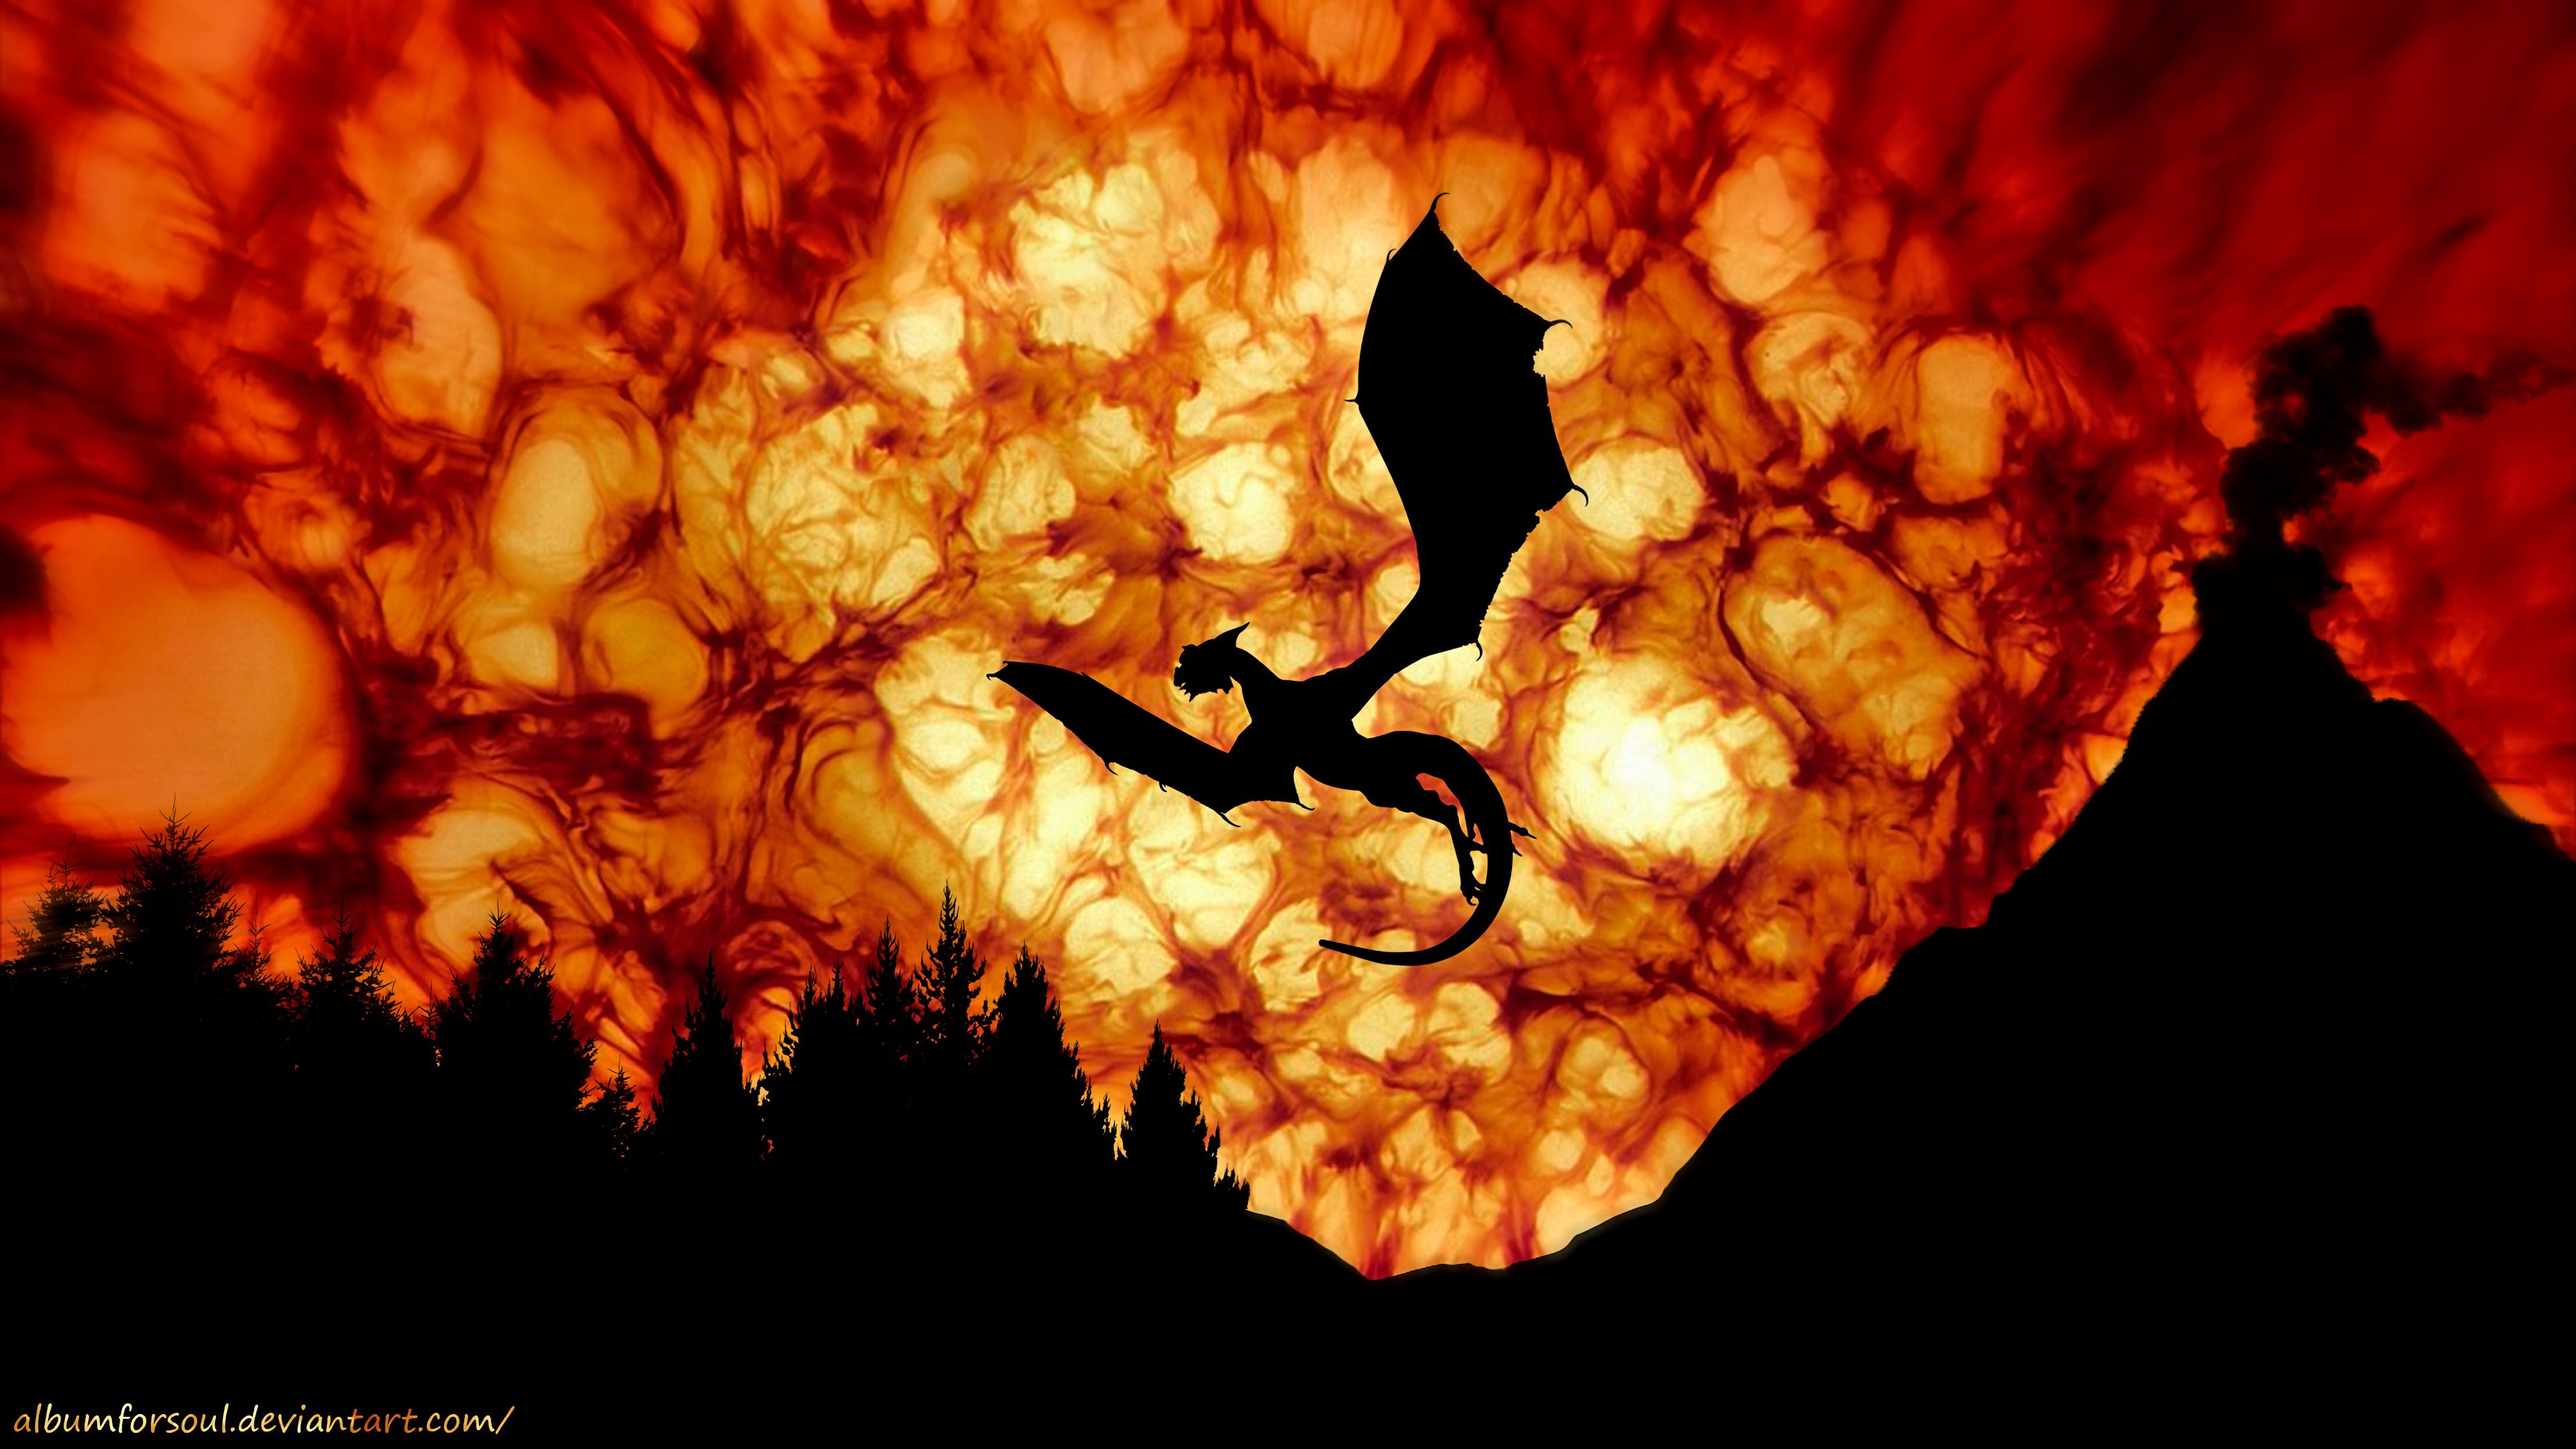 111822 Screensavers and Wallpapers Fiction for phone. Download Sky, Art, Fire, Dragon, Fiction, That's Incredible pictures for free